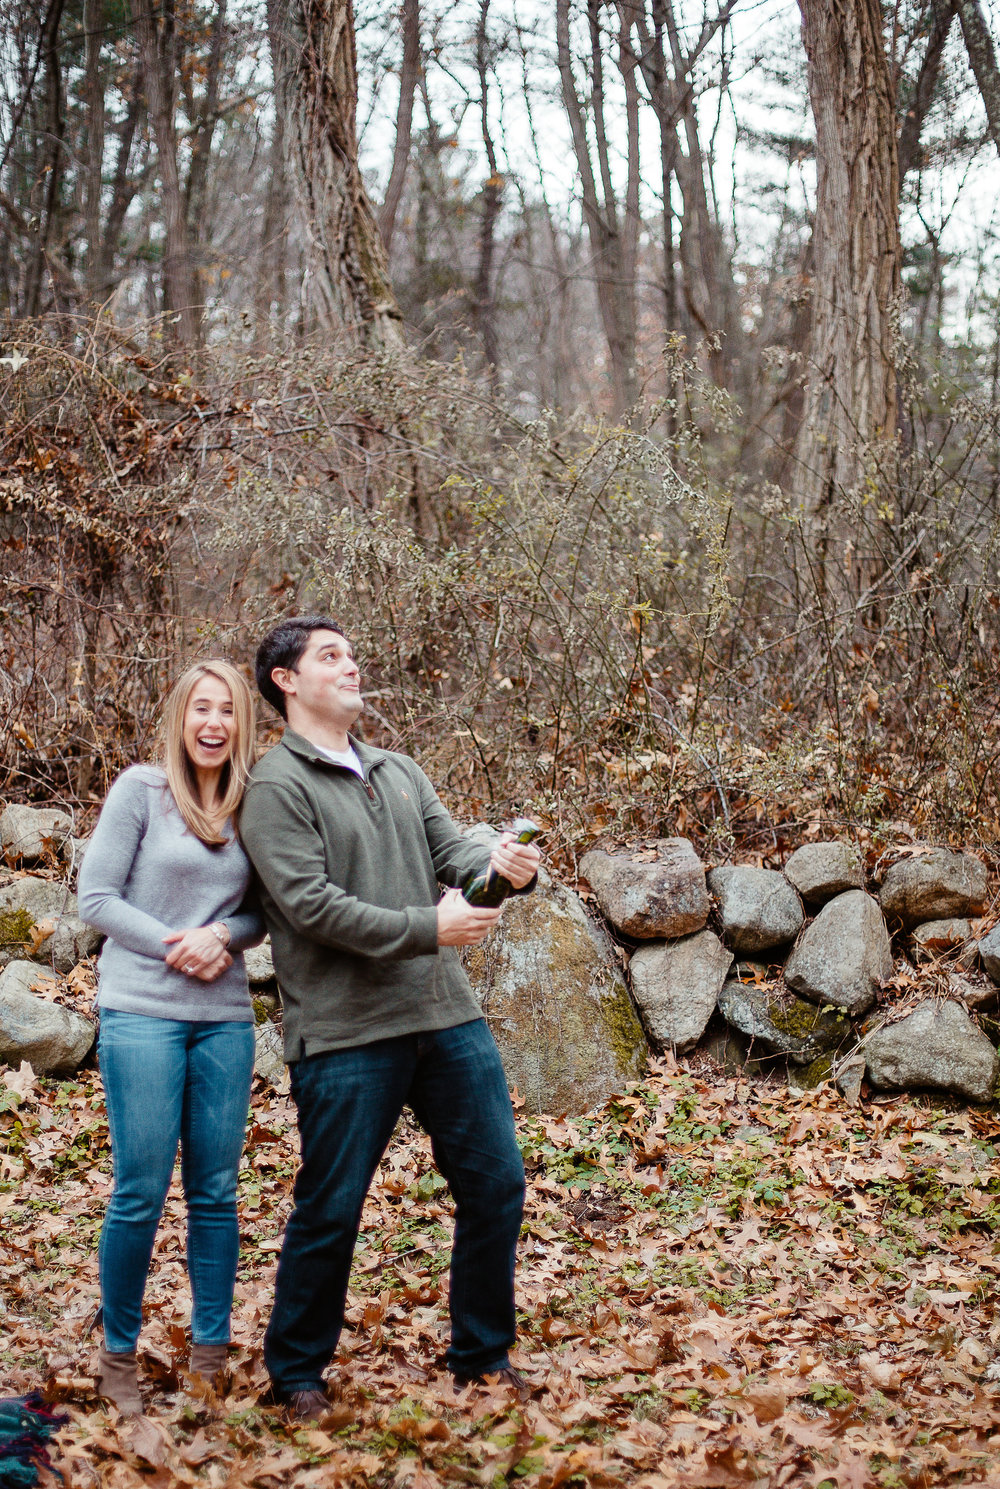 Joy Uyeno Greater Boston engagement photographer champagne toast in the woods of Concord, Massachusetts